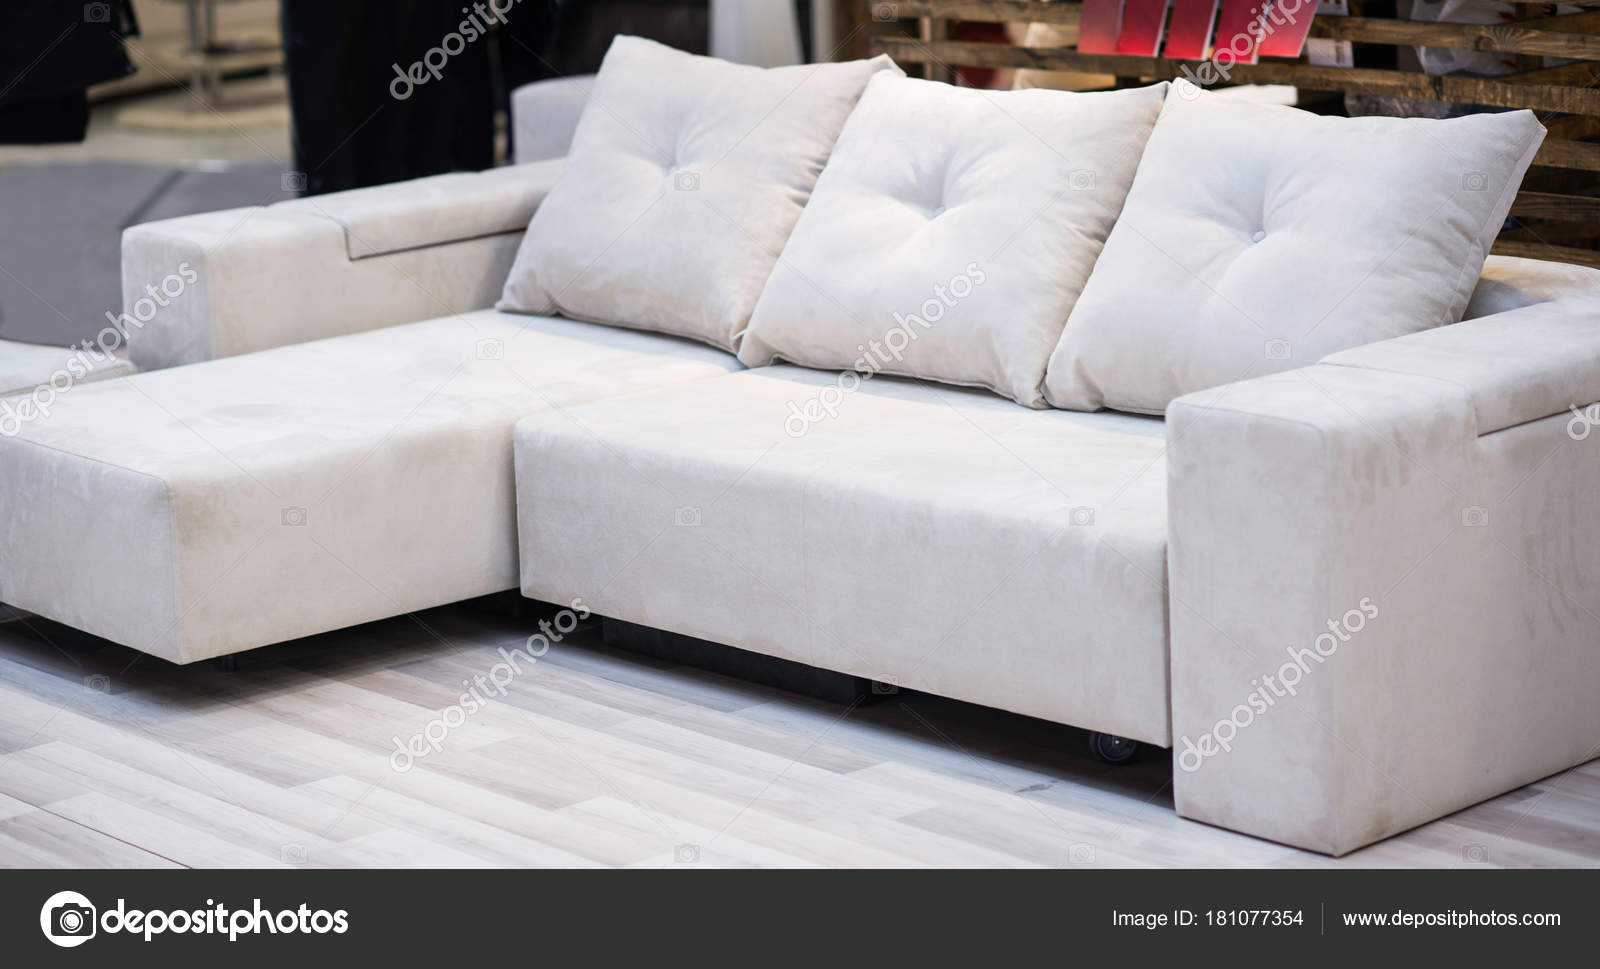 Miraculous White Sofa Pillows Store Stock Photo C Microgen 181077354 Squirreltailoven Fun Painted Chair Ideas Images Squirreltailovenorg